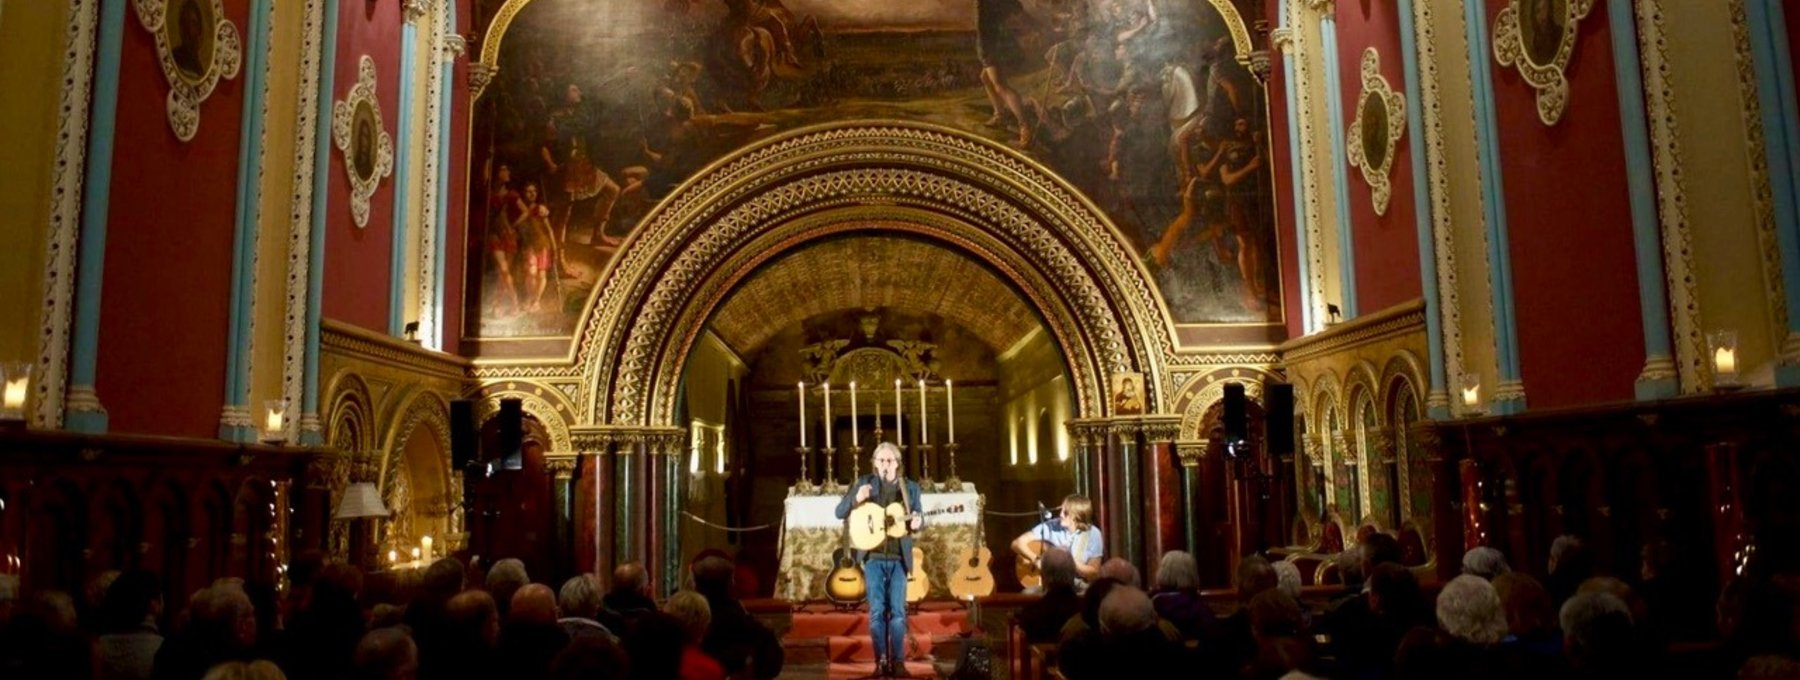 Perthshire Amber Festival - The chapel at Murthly Estate is a favourite music concert venue for Dougie' MacLean's Perthshire Amber Festival. (© Murthly Estate)